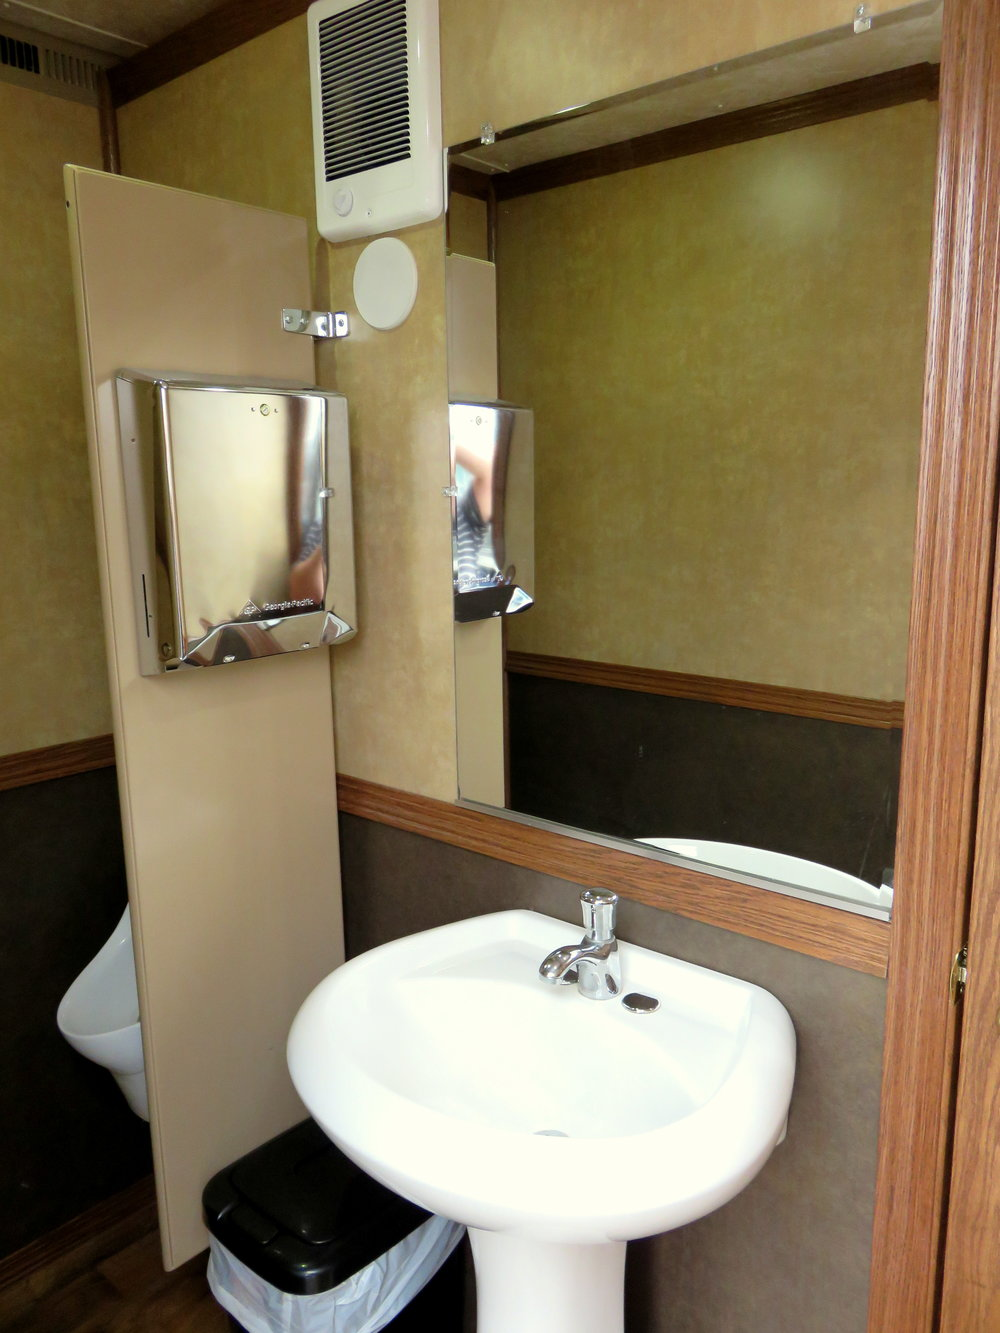 4 person restroom trailer